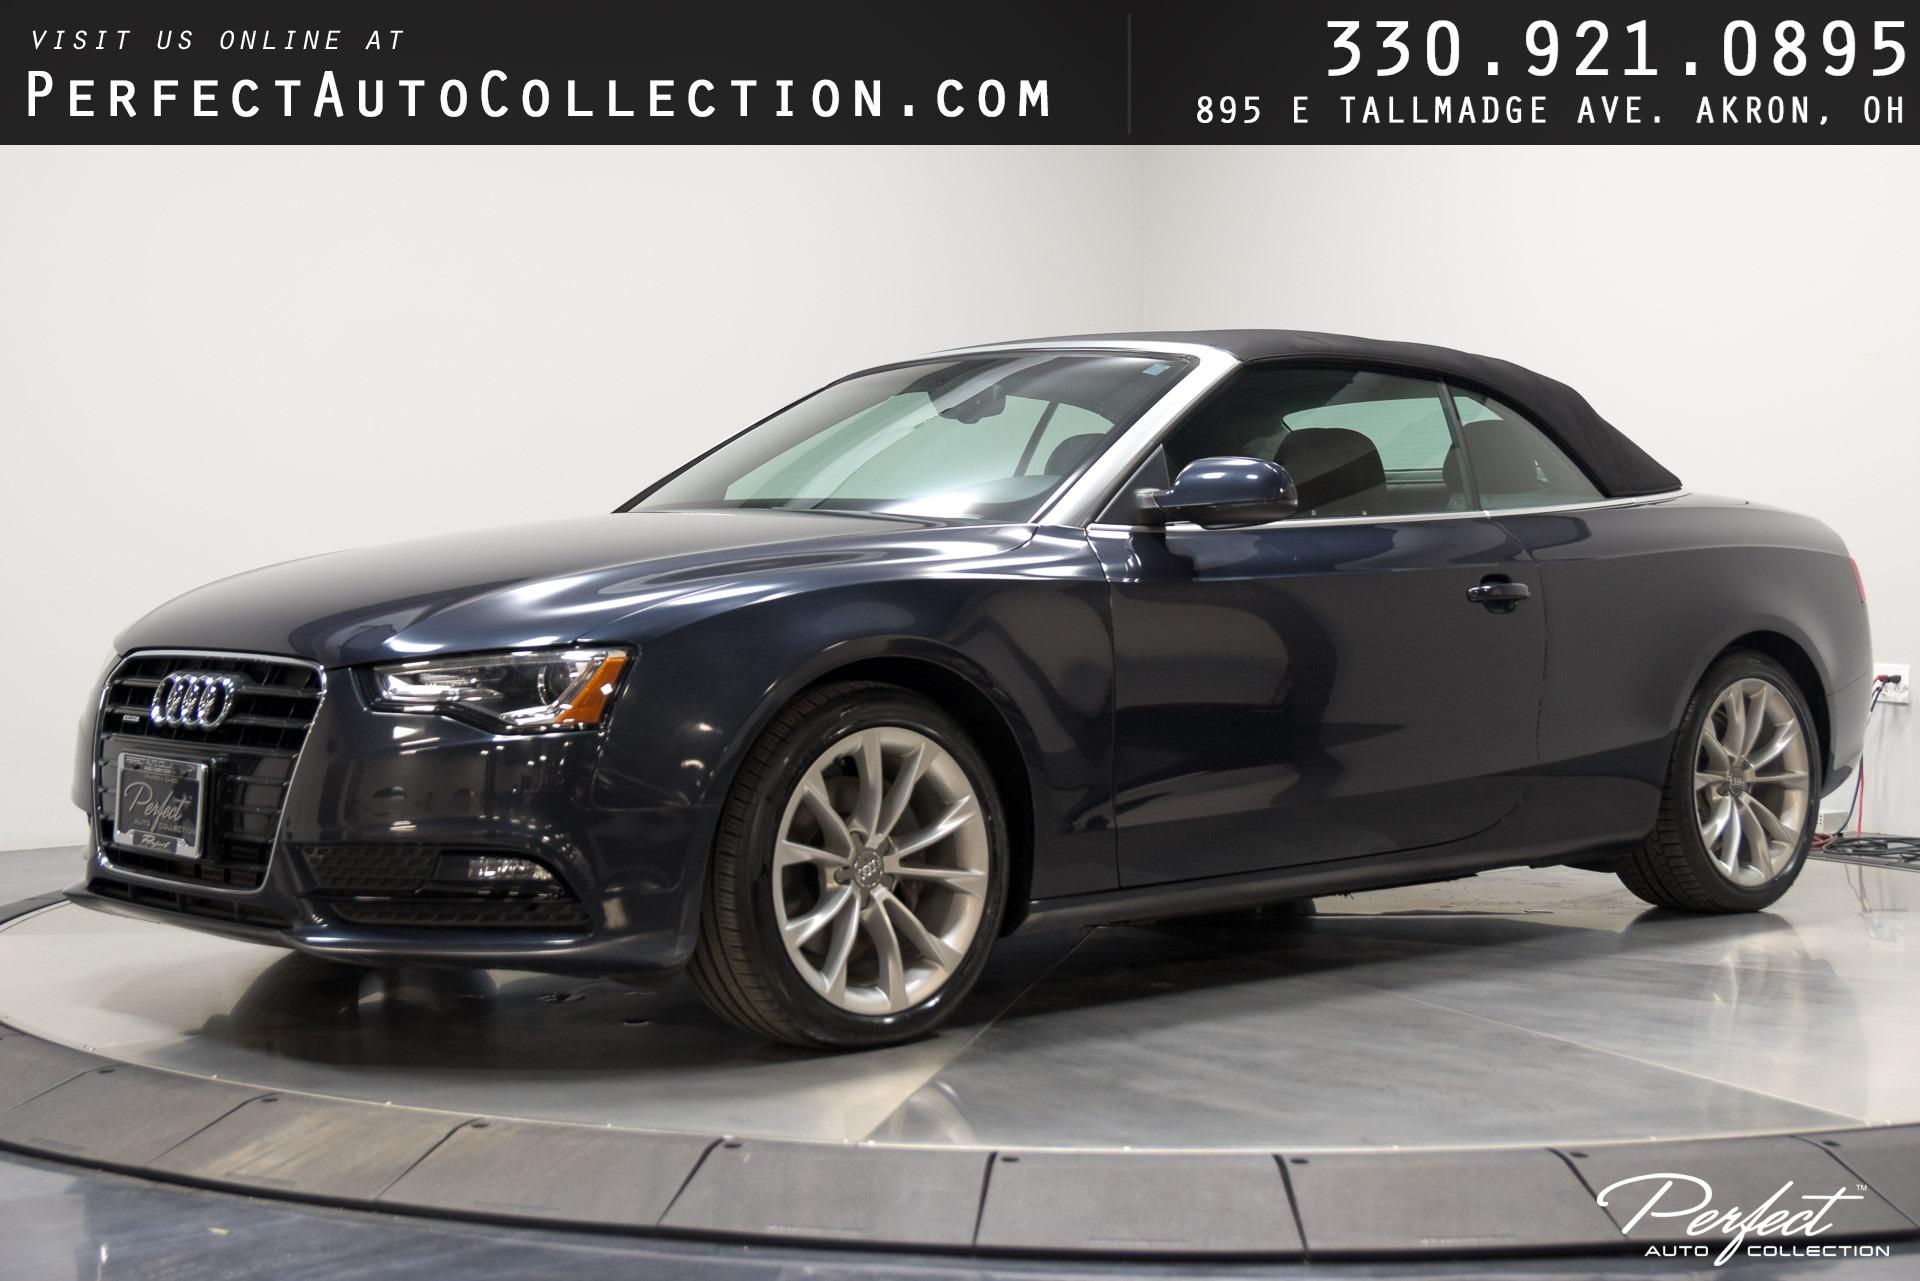 Used 2013 Audi A5 2.0T quattro Premium Plus for sale Sold at Perfect Auto Collection in Akron OH 44310 1